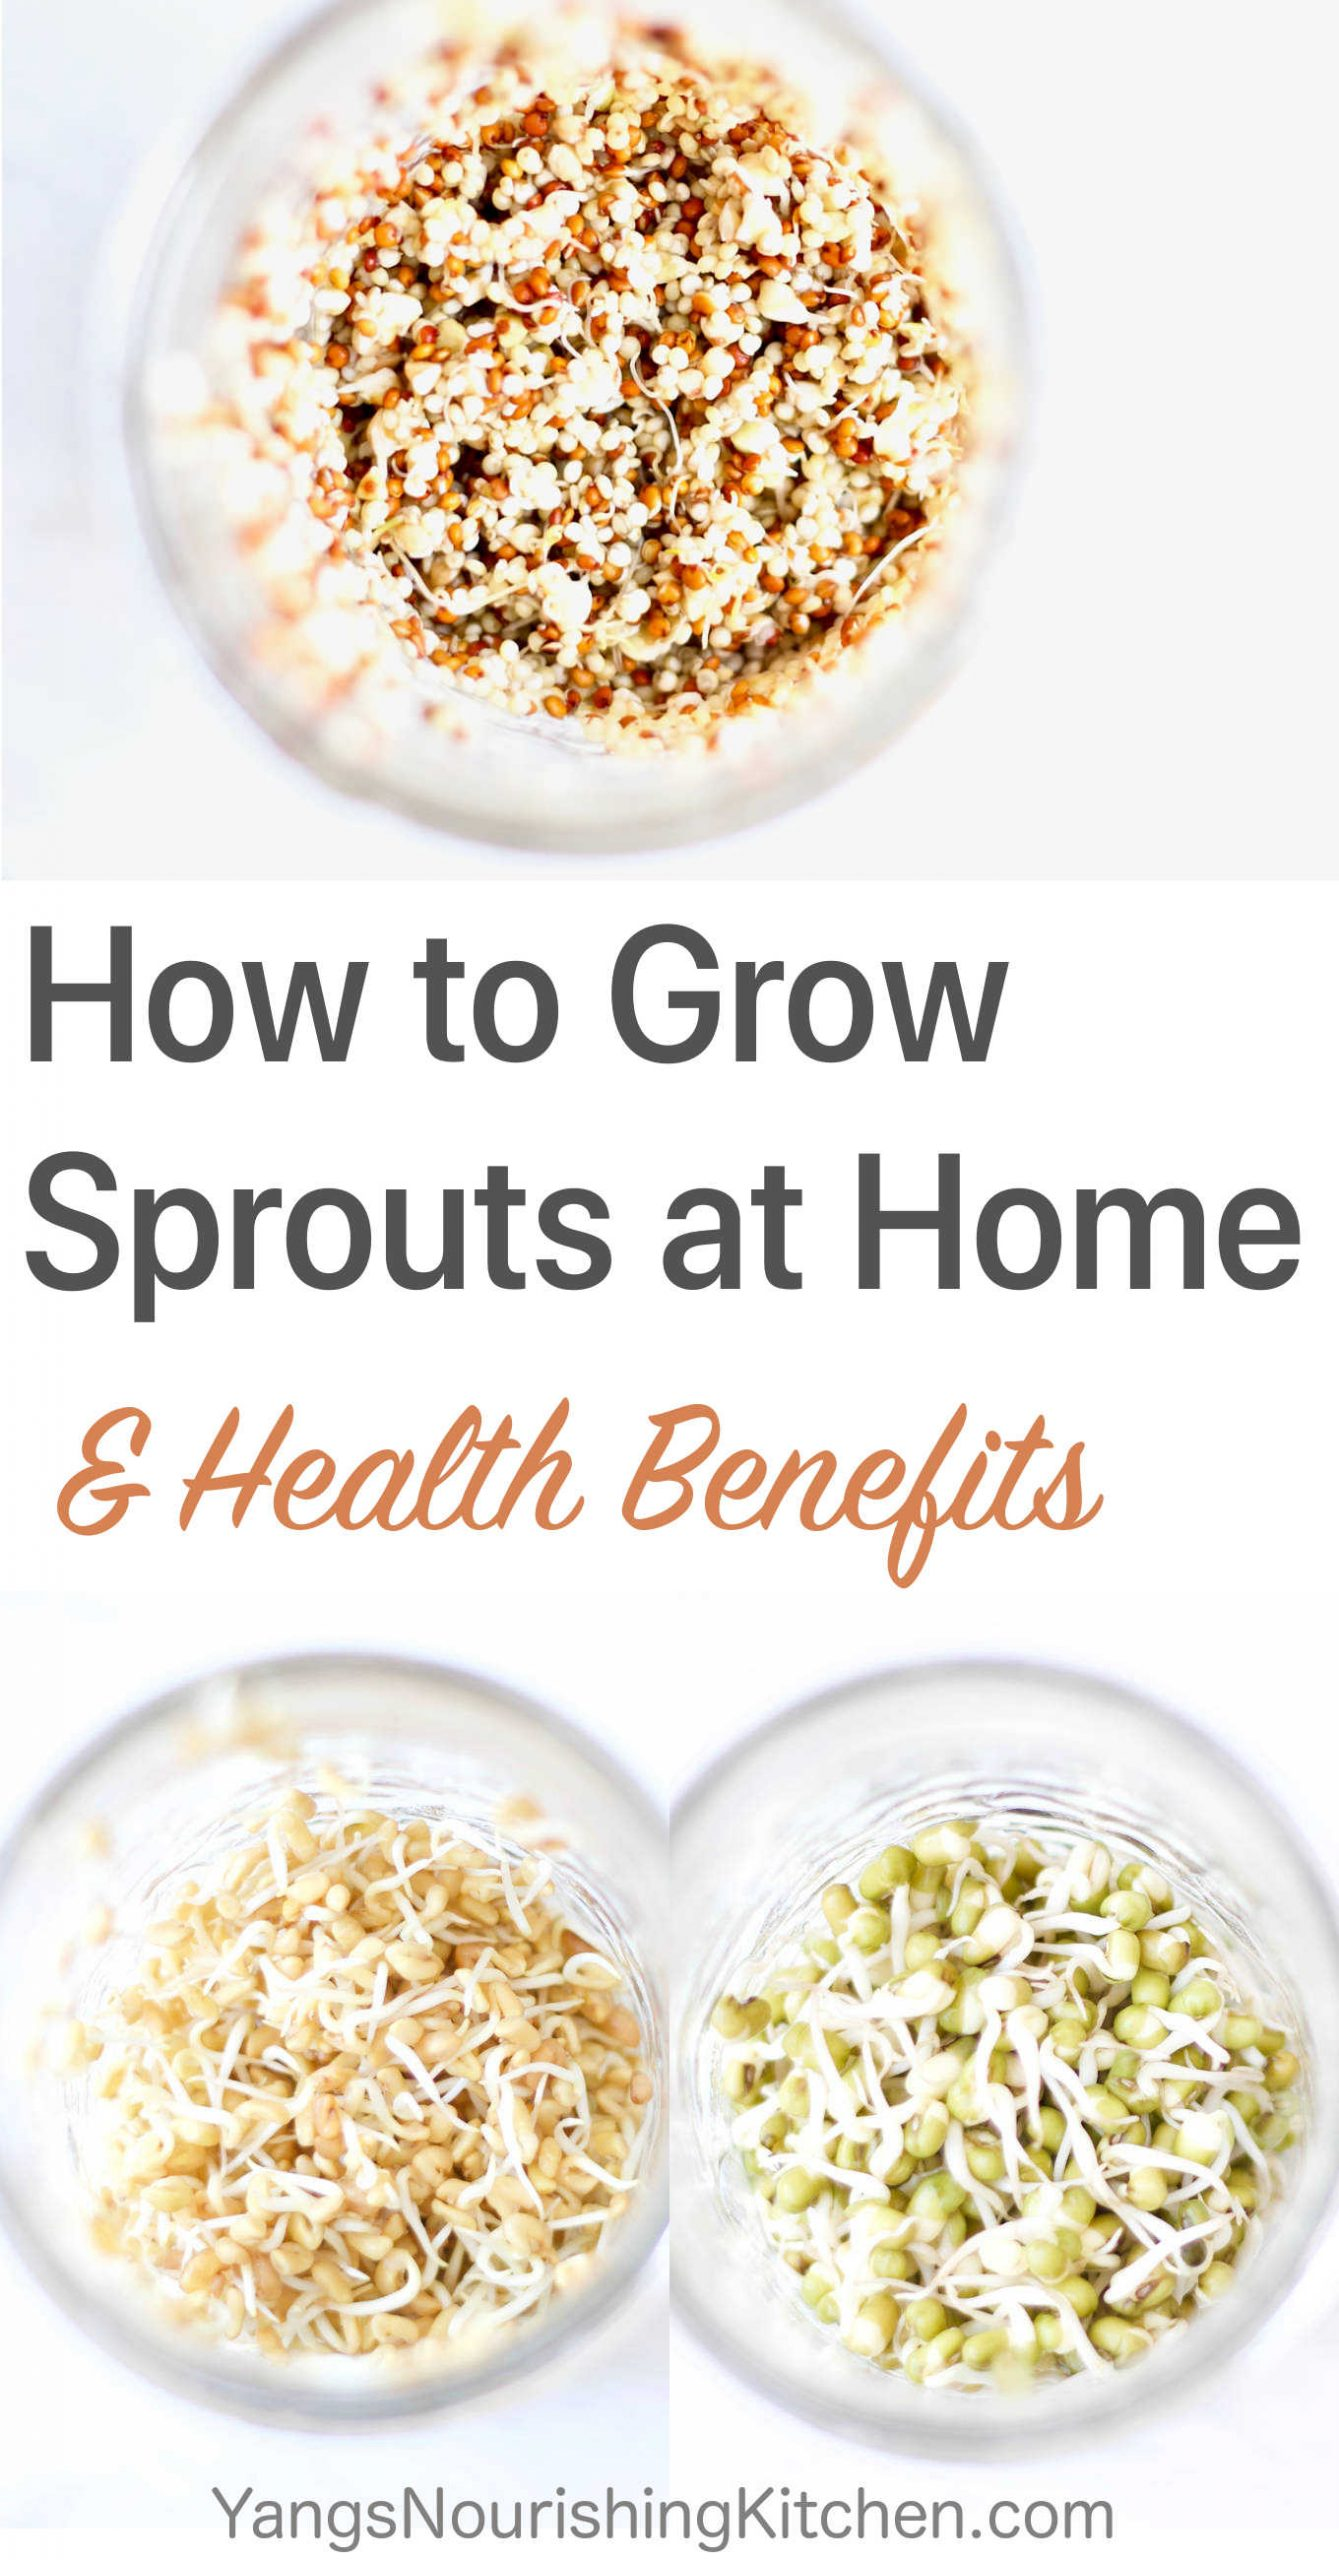 How to Grow Sprouts + Health Benefits